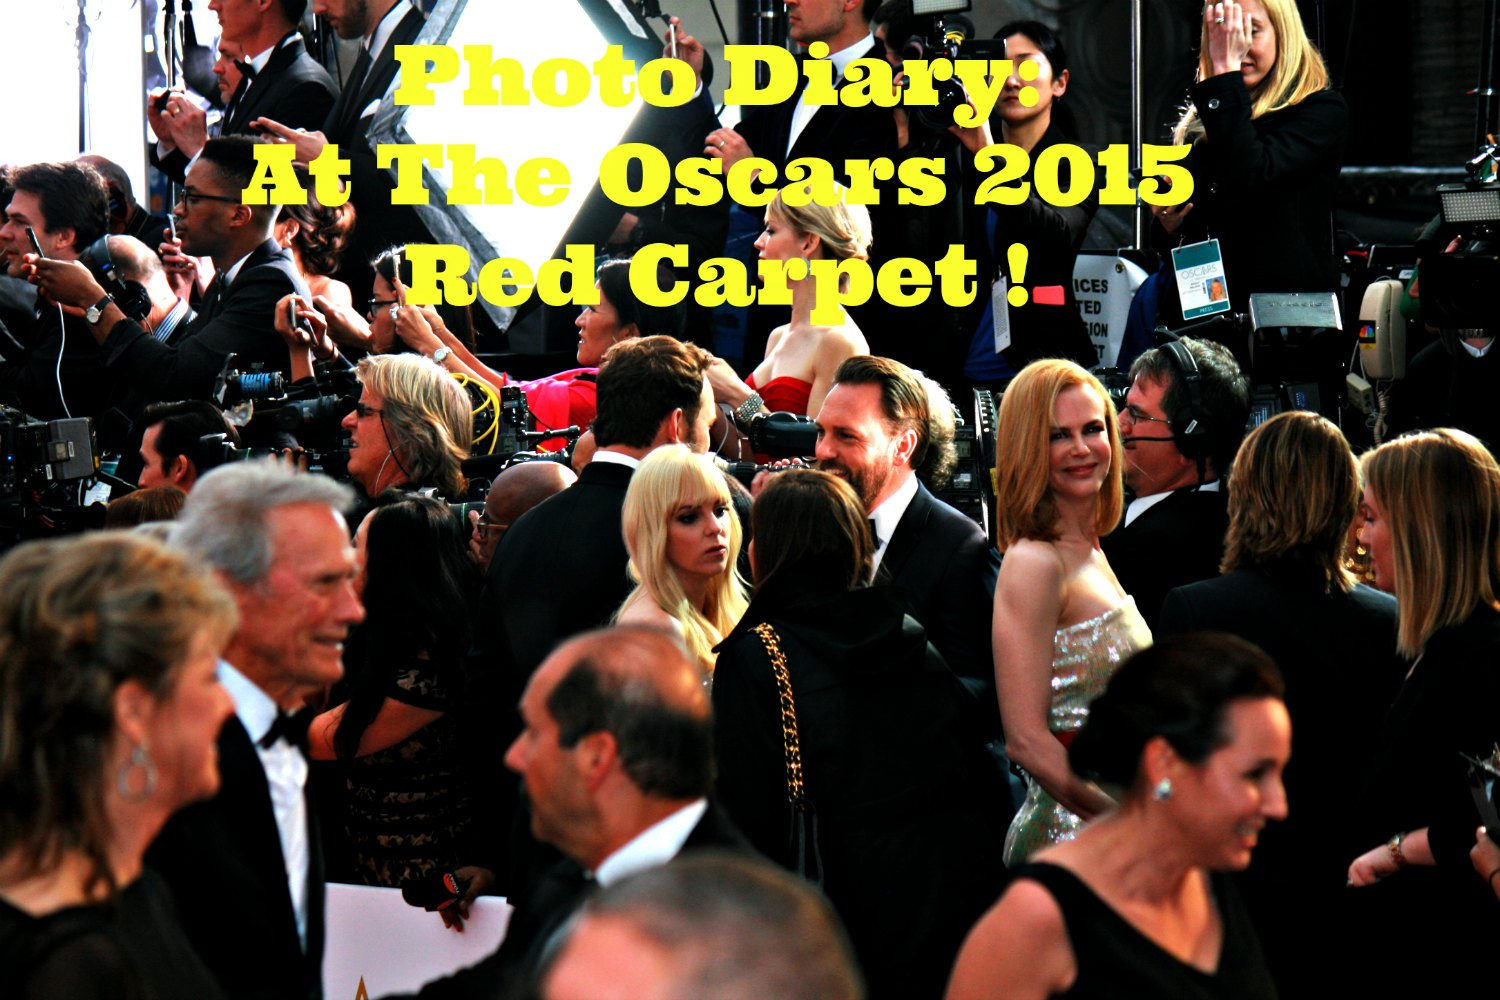 Photo Diary: The Oscars 2015 Red Carpet With United Airlines